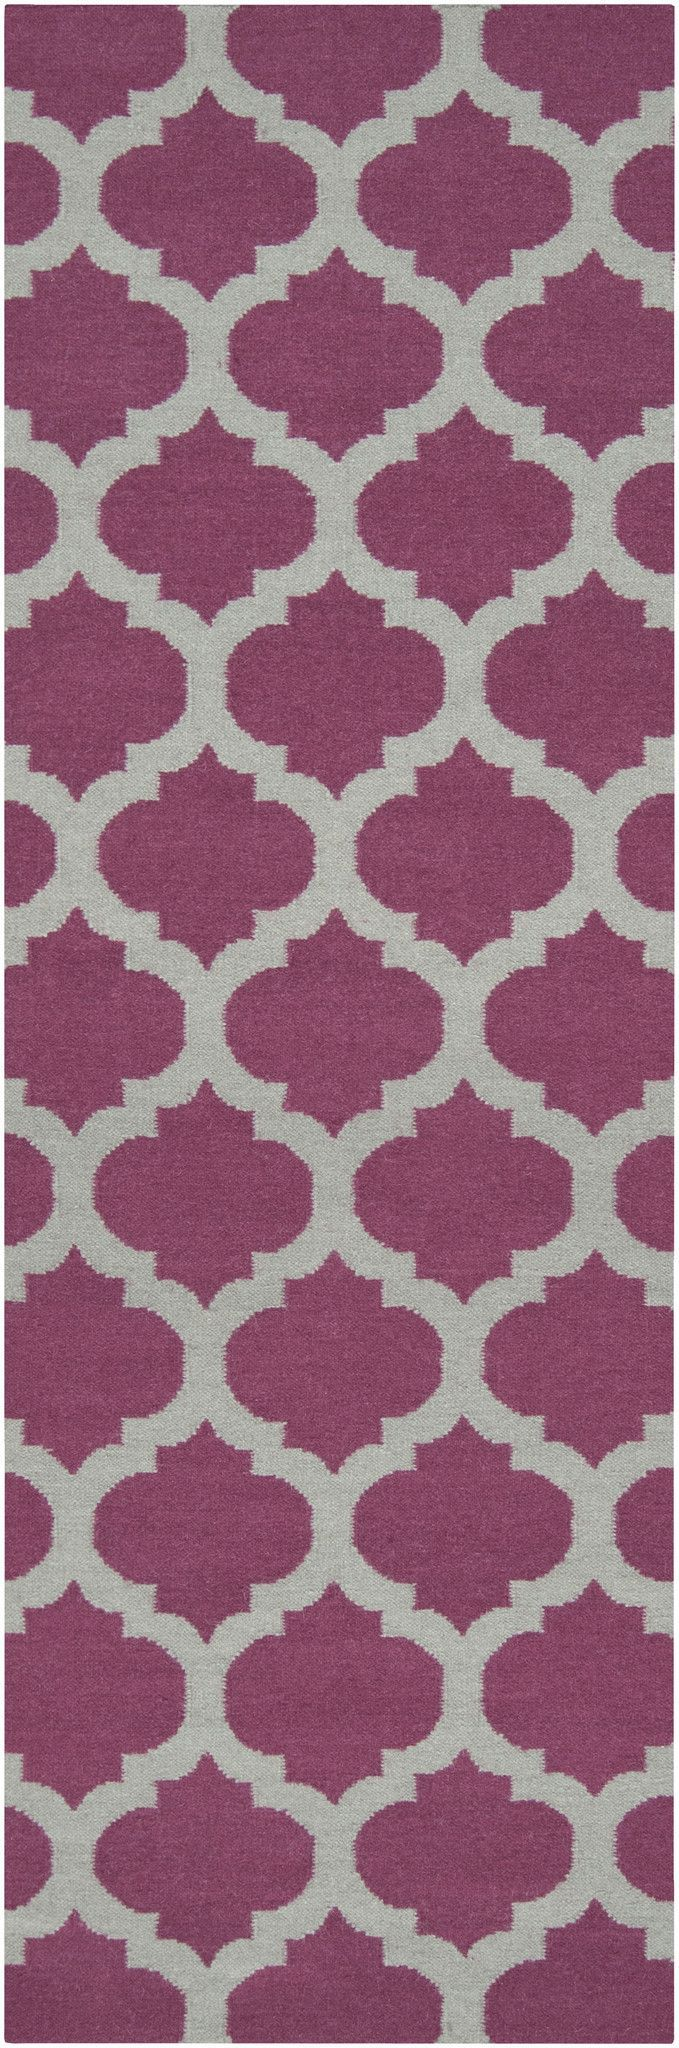 Surya FT115 Frontier Purple Runner Area Rug